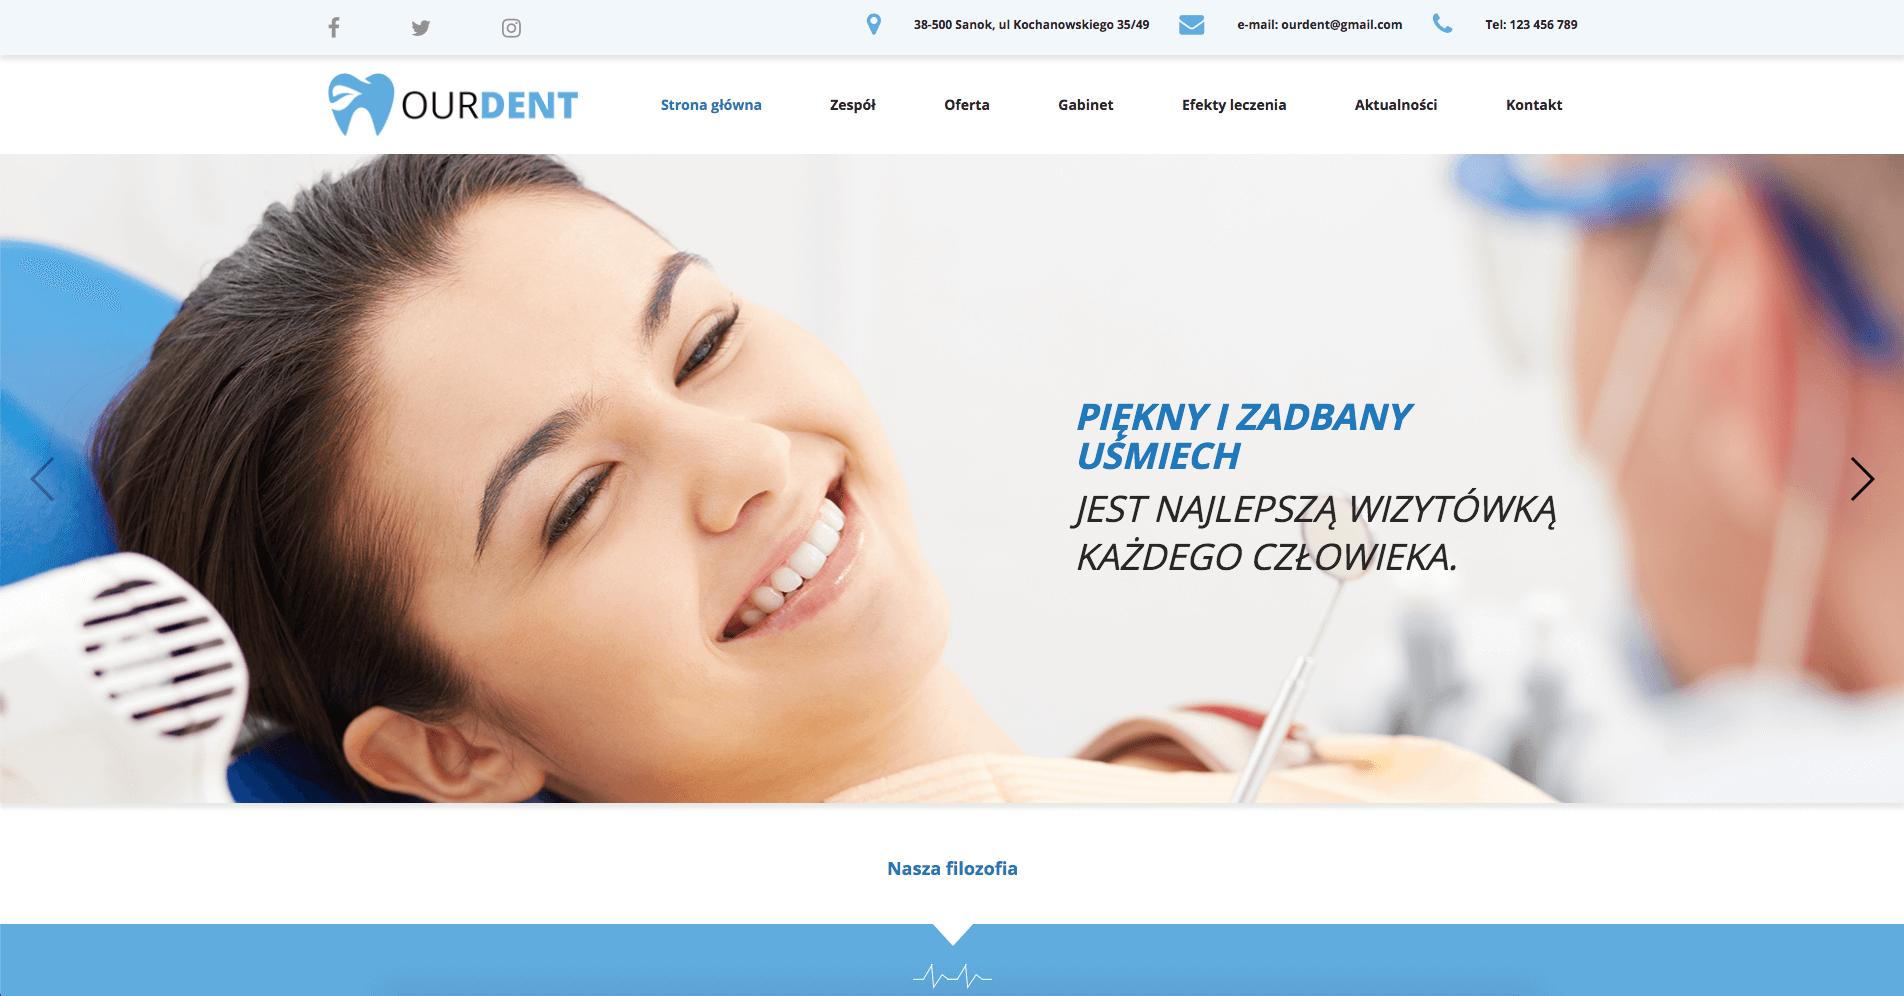 Ourdent